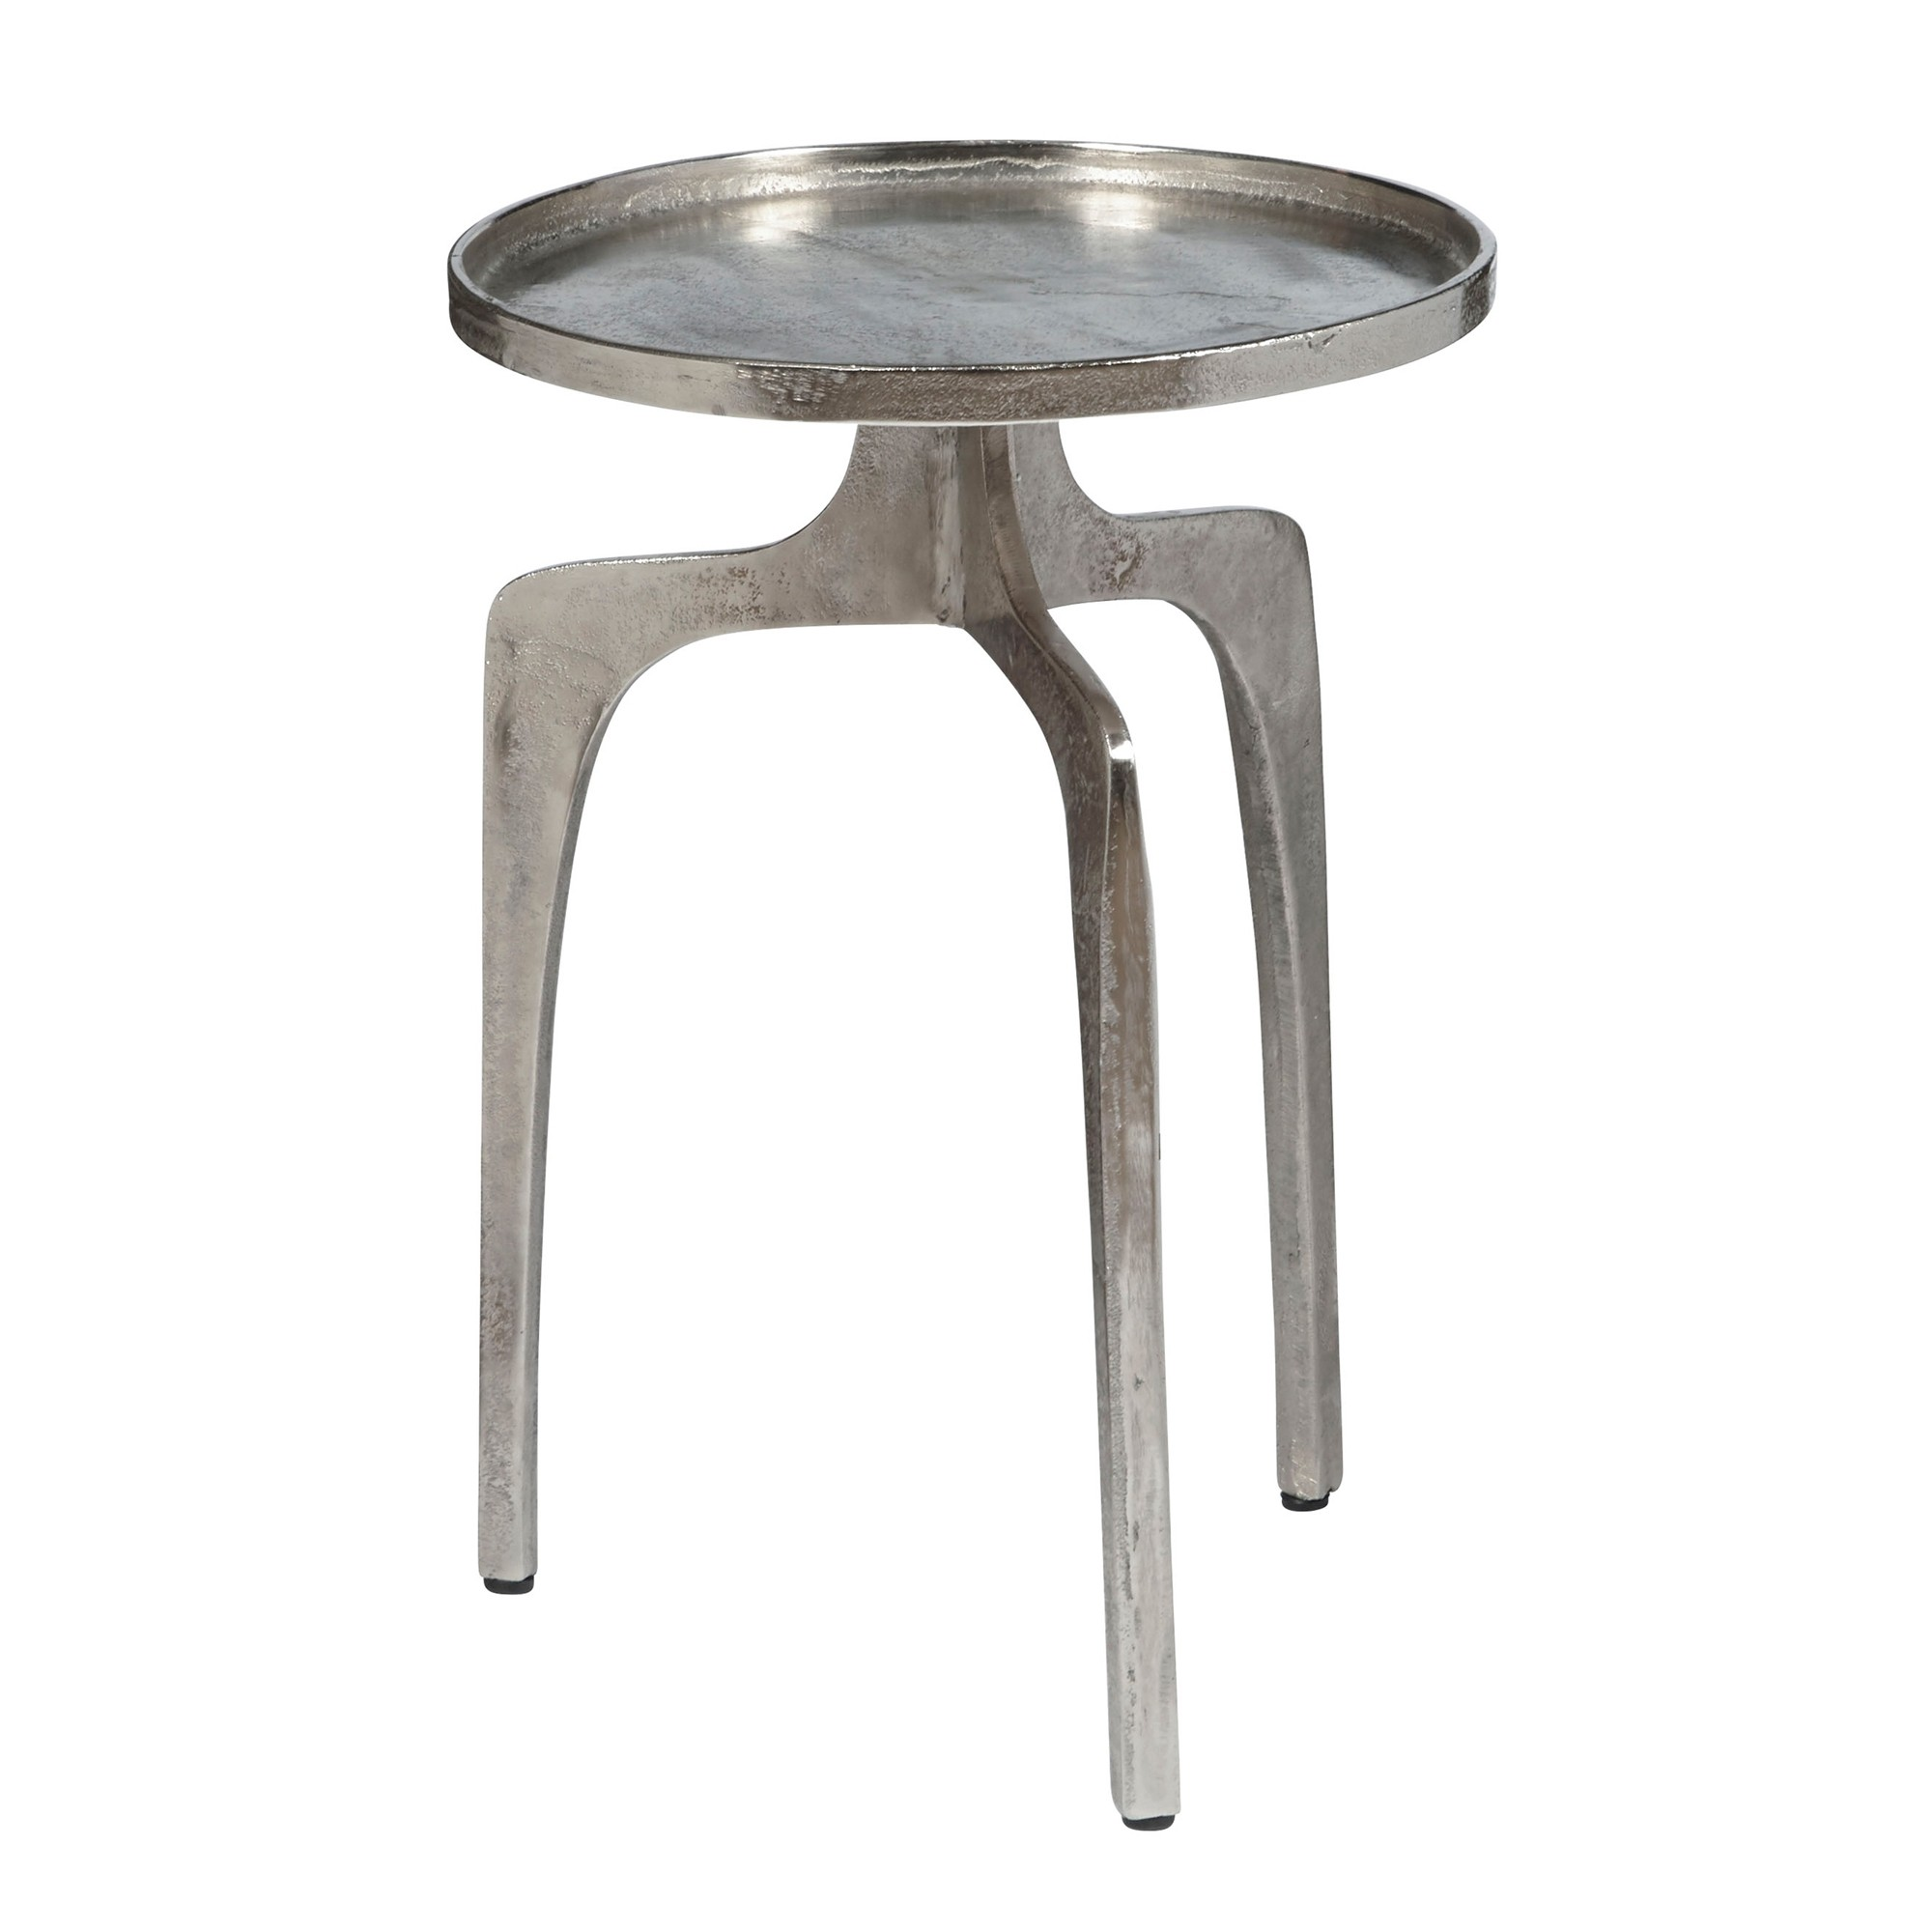 pulaski distressed silver round tray top accent table tepperman metal coffee kid runner home and deco cool tables ashley furniture desk plexiglass sun umbrella base large antique